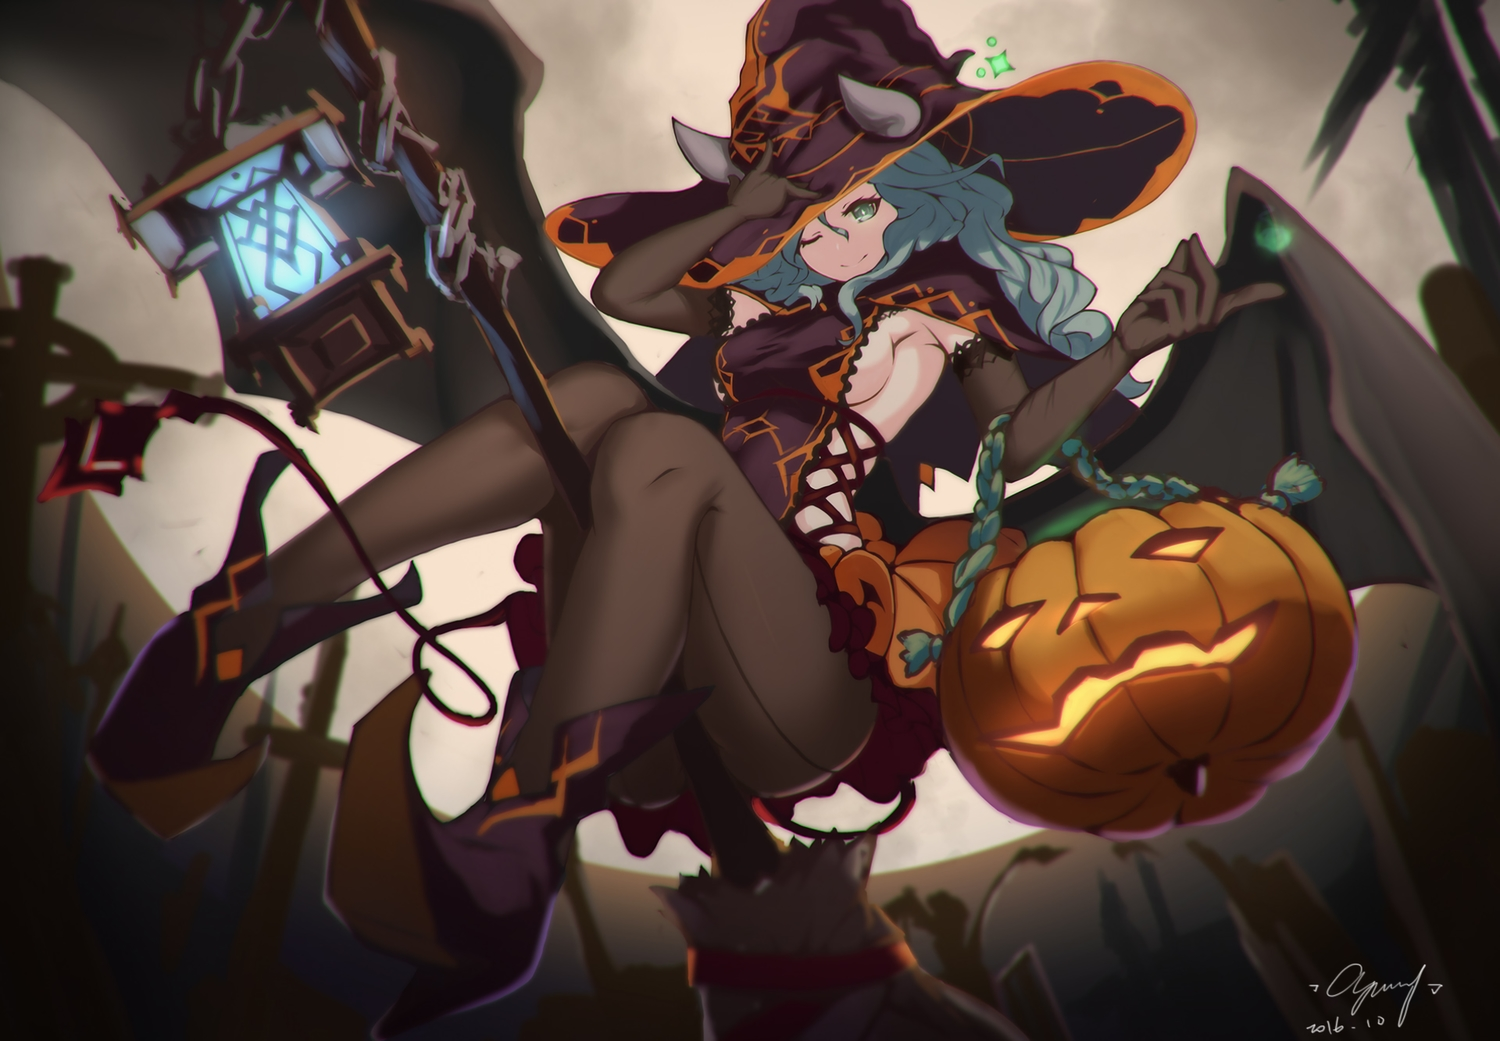 aqua_hair breasts cang_yue_xue_feng elbow_gloves gloves green_eyes halloween hat horns long_hair moon night original pantyhose pumpkin sideboob signed witch_hat